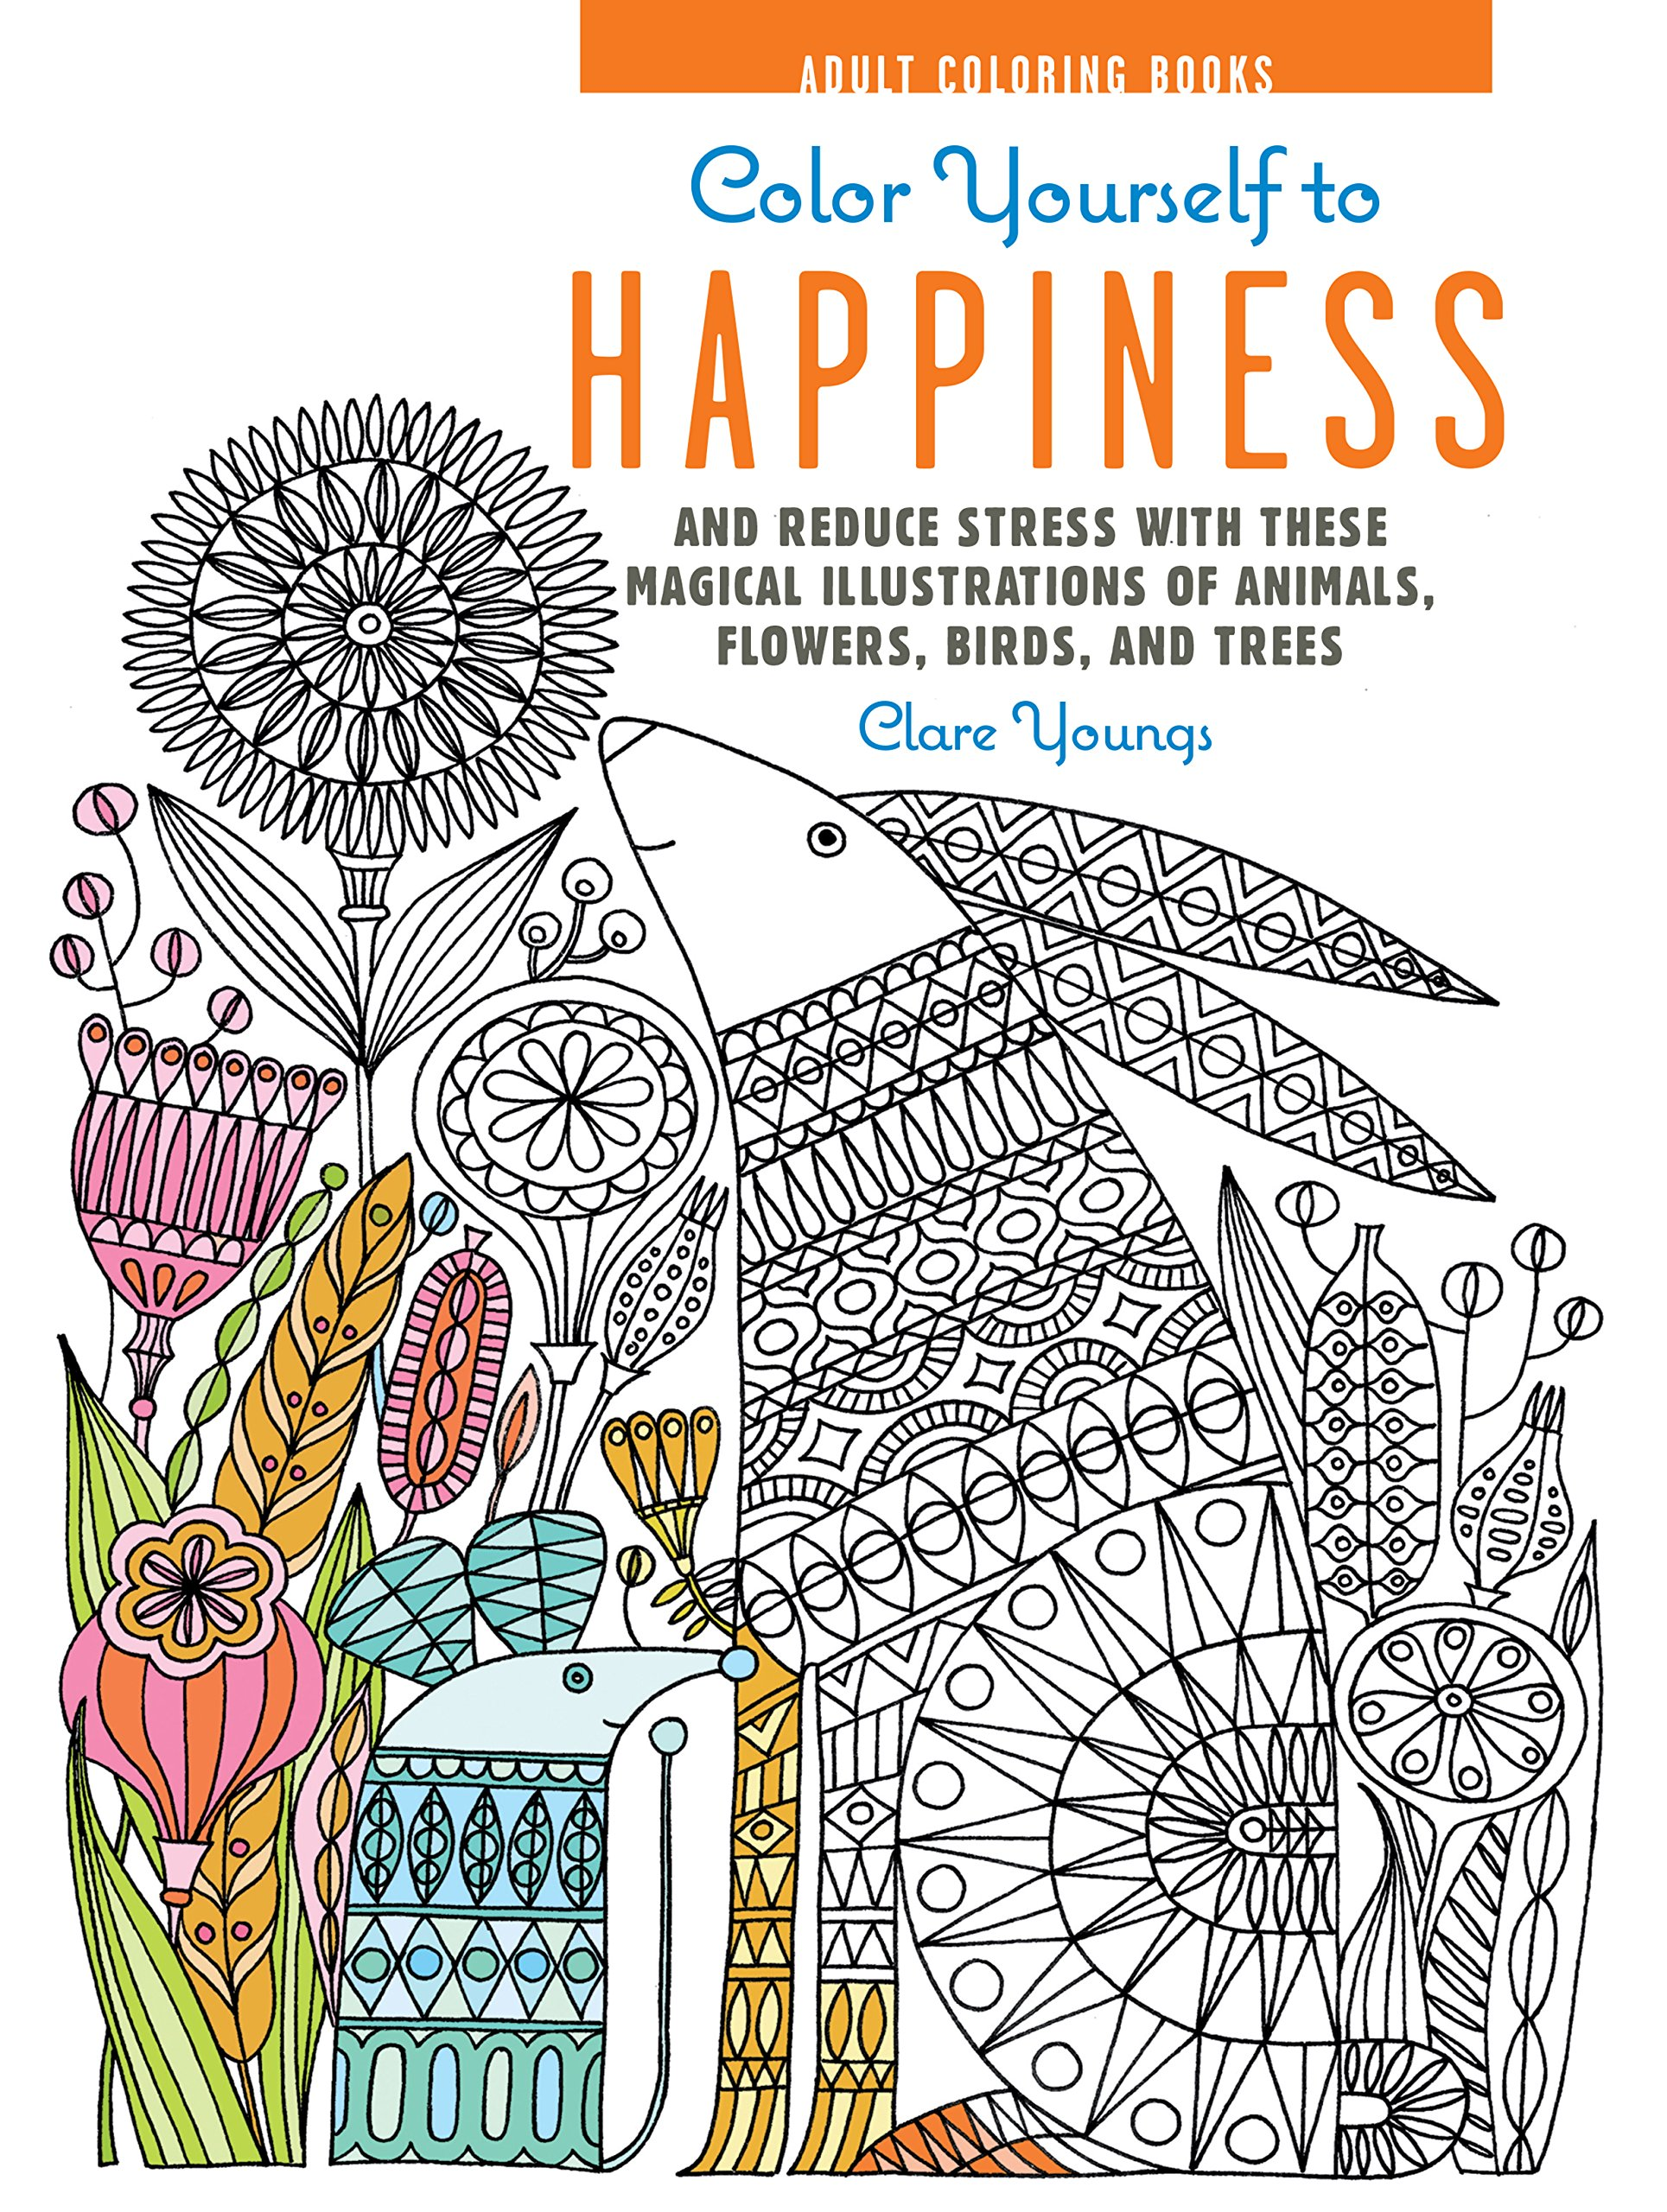 Coloring Book Review Color Yourself To Happiness